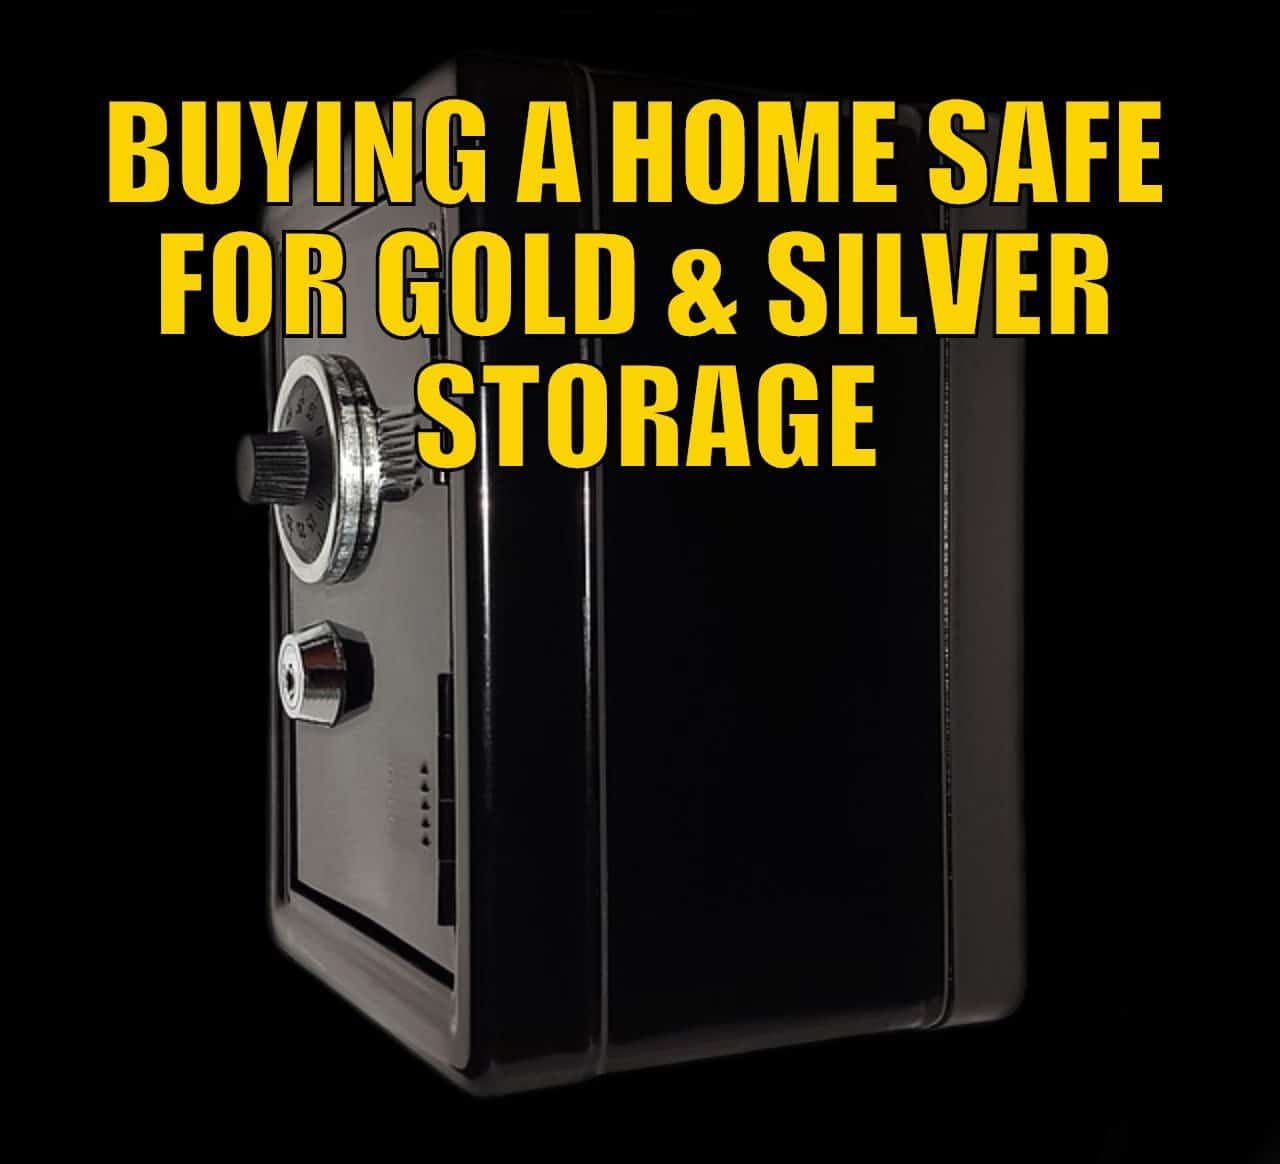 Buying a Home Safe for Gold Silver Storage